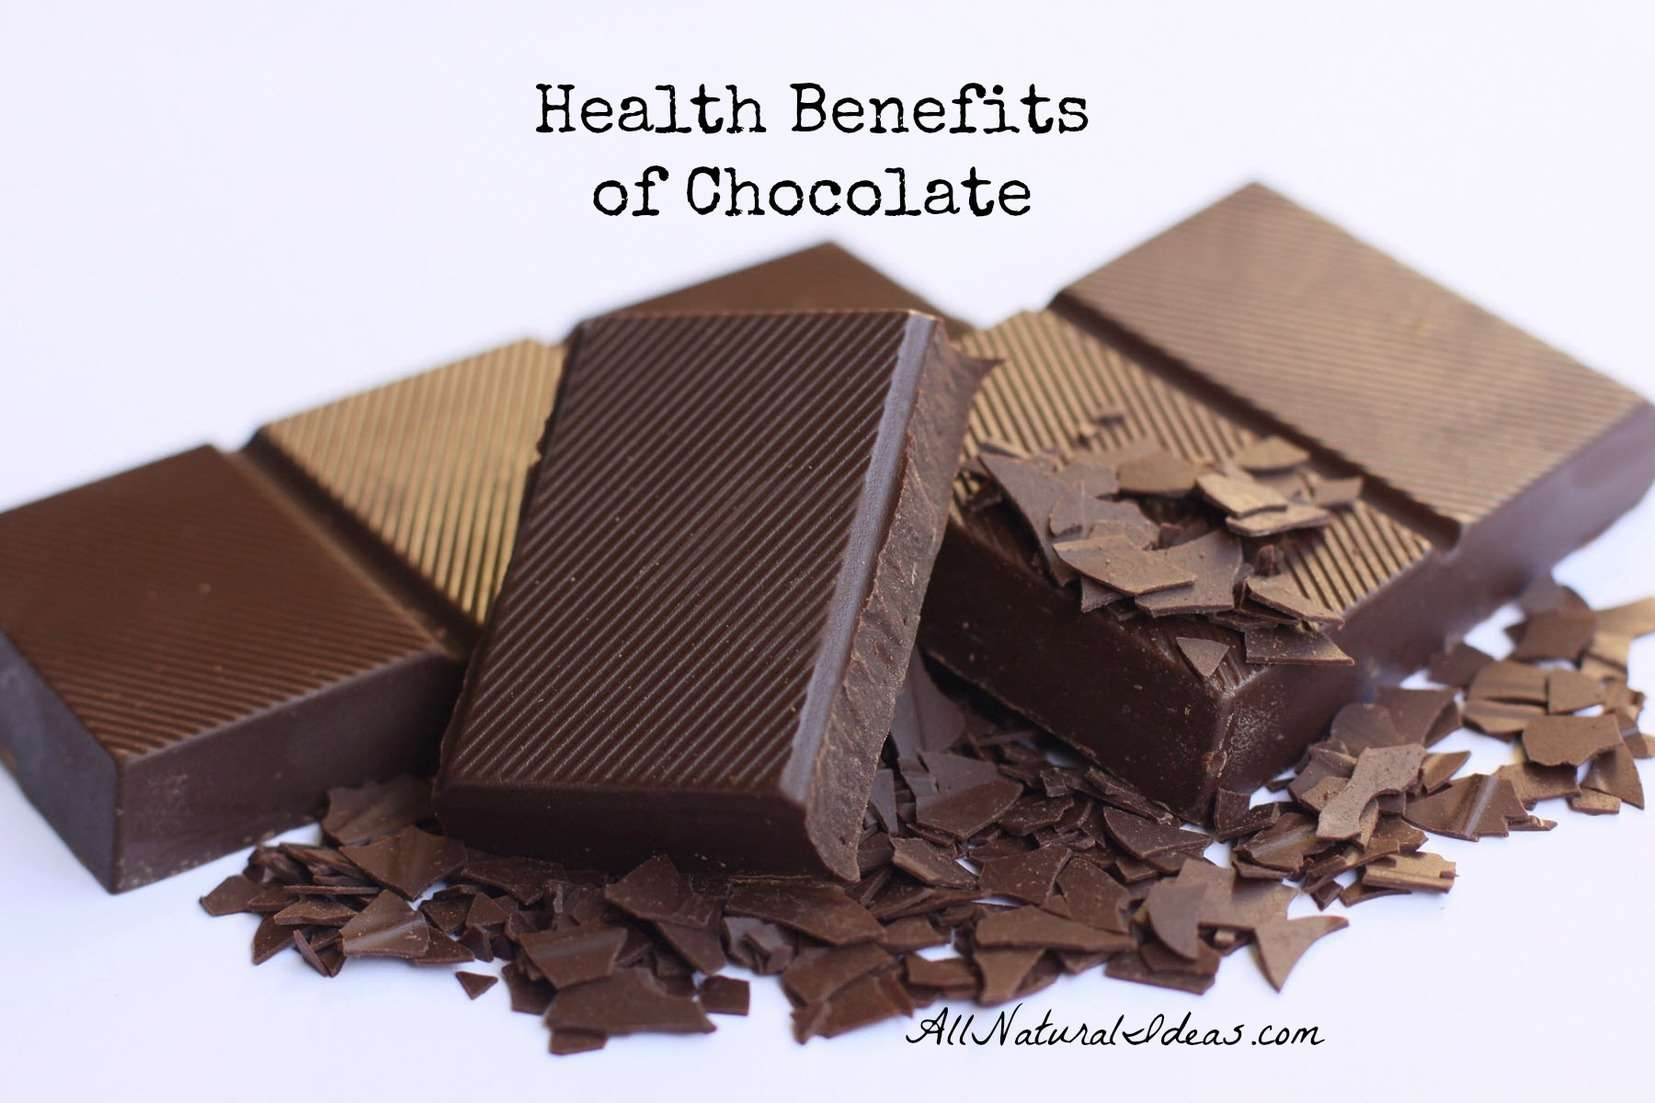 Chocolate Health Benefits | All Natural Ideas